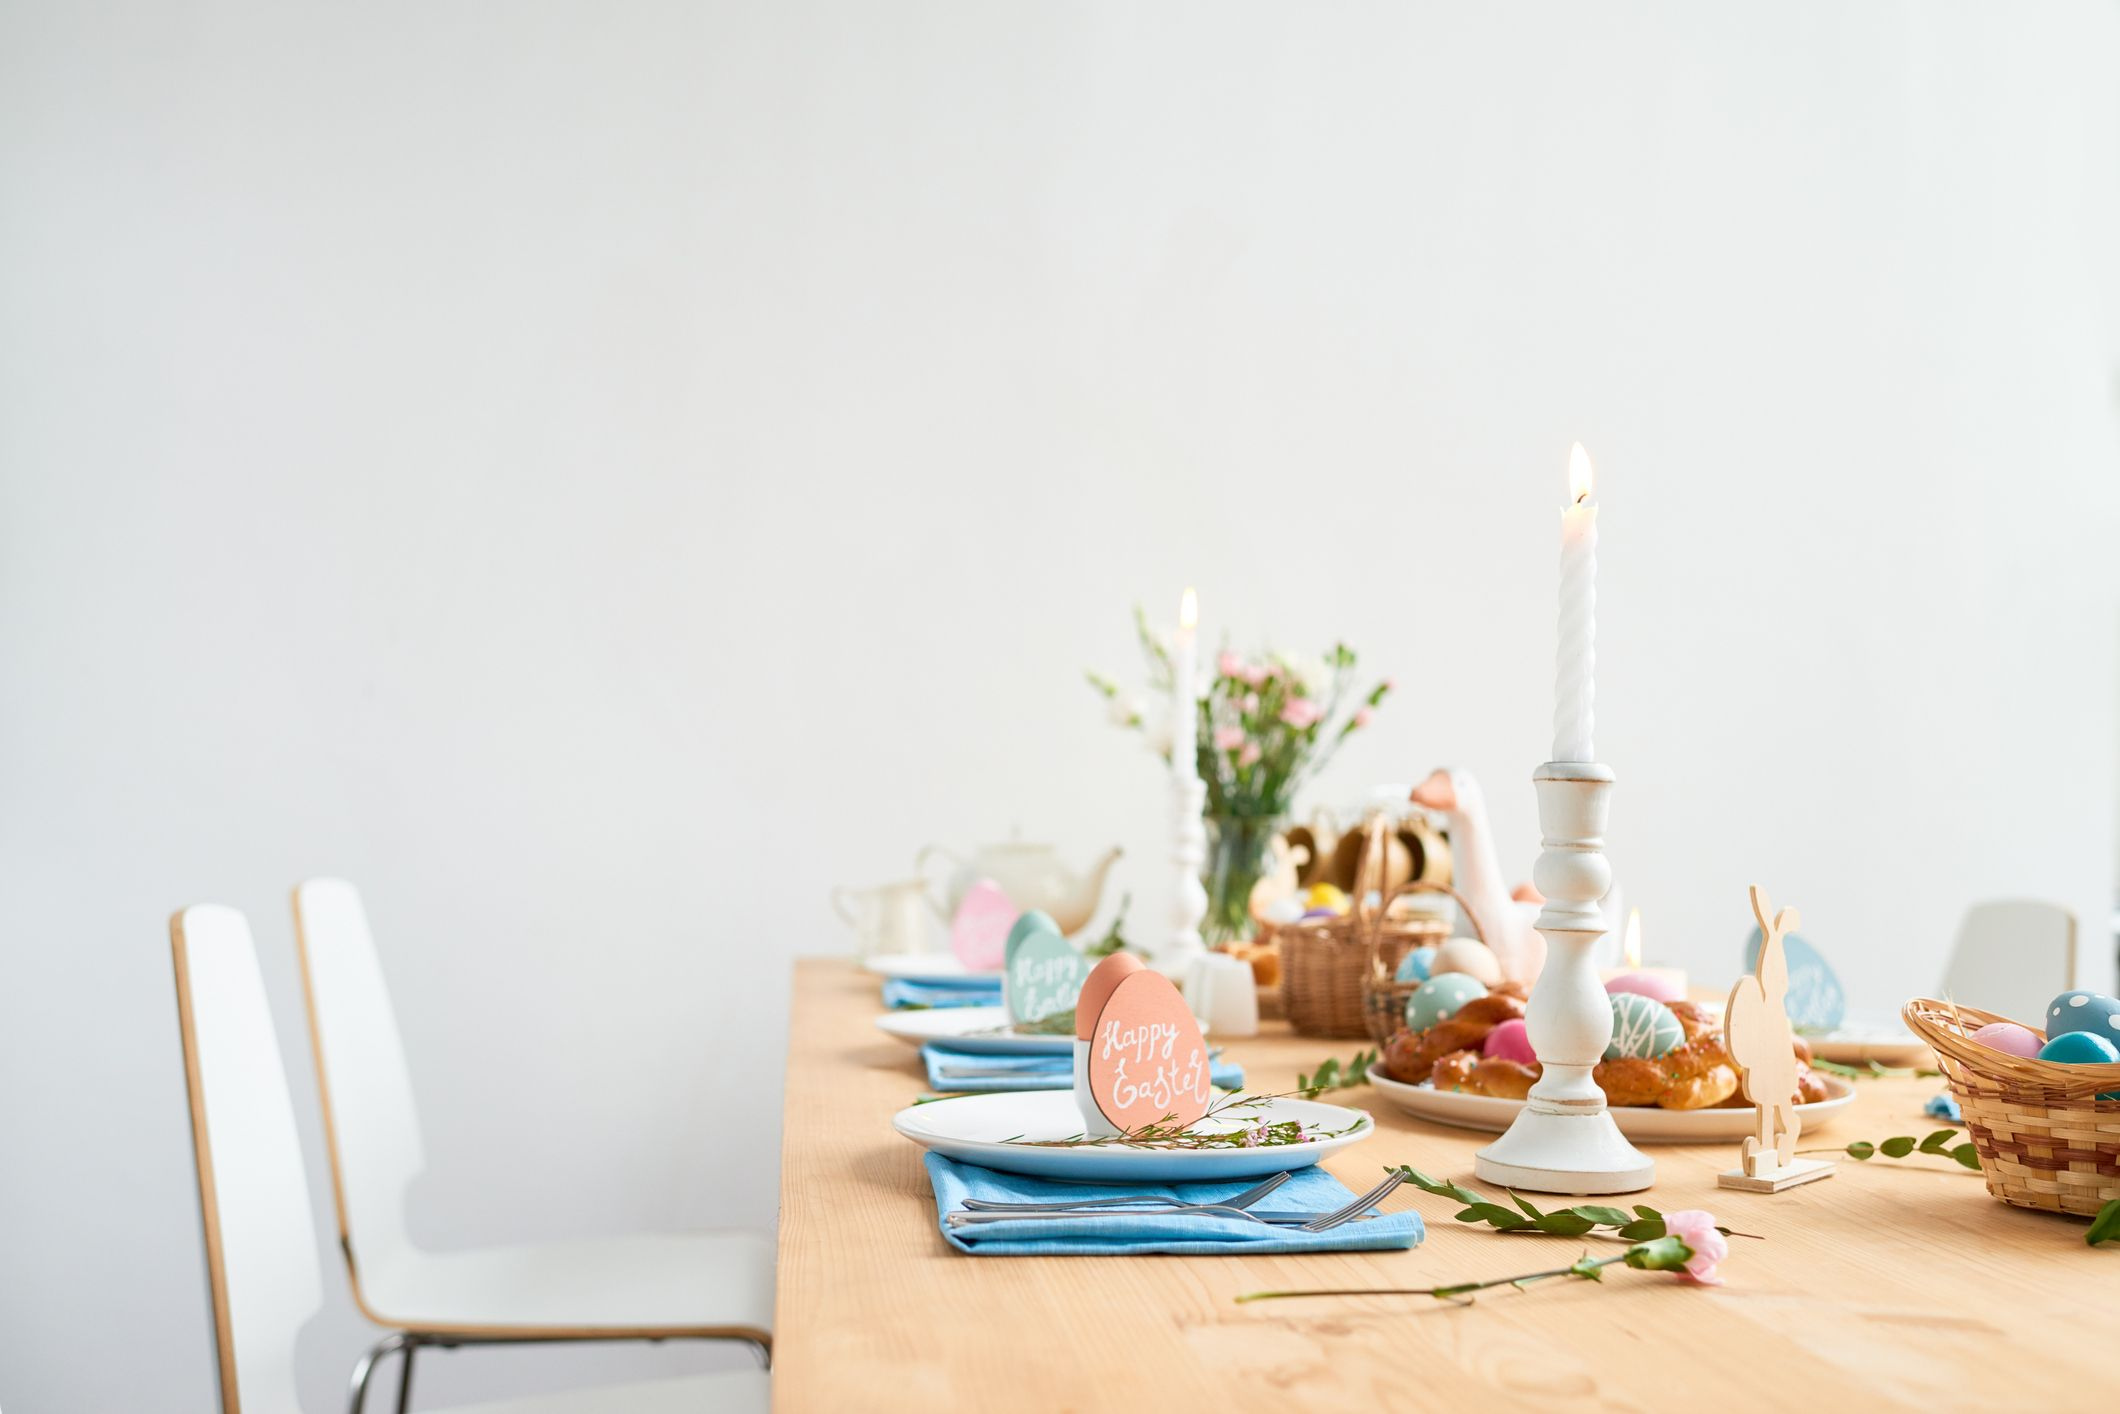 5 tips for hosting the perfect family get-together this Easter